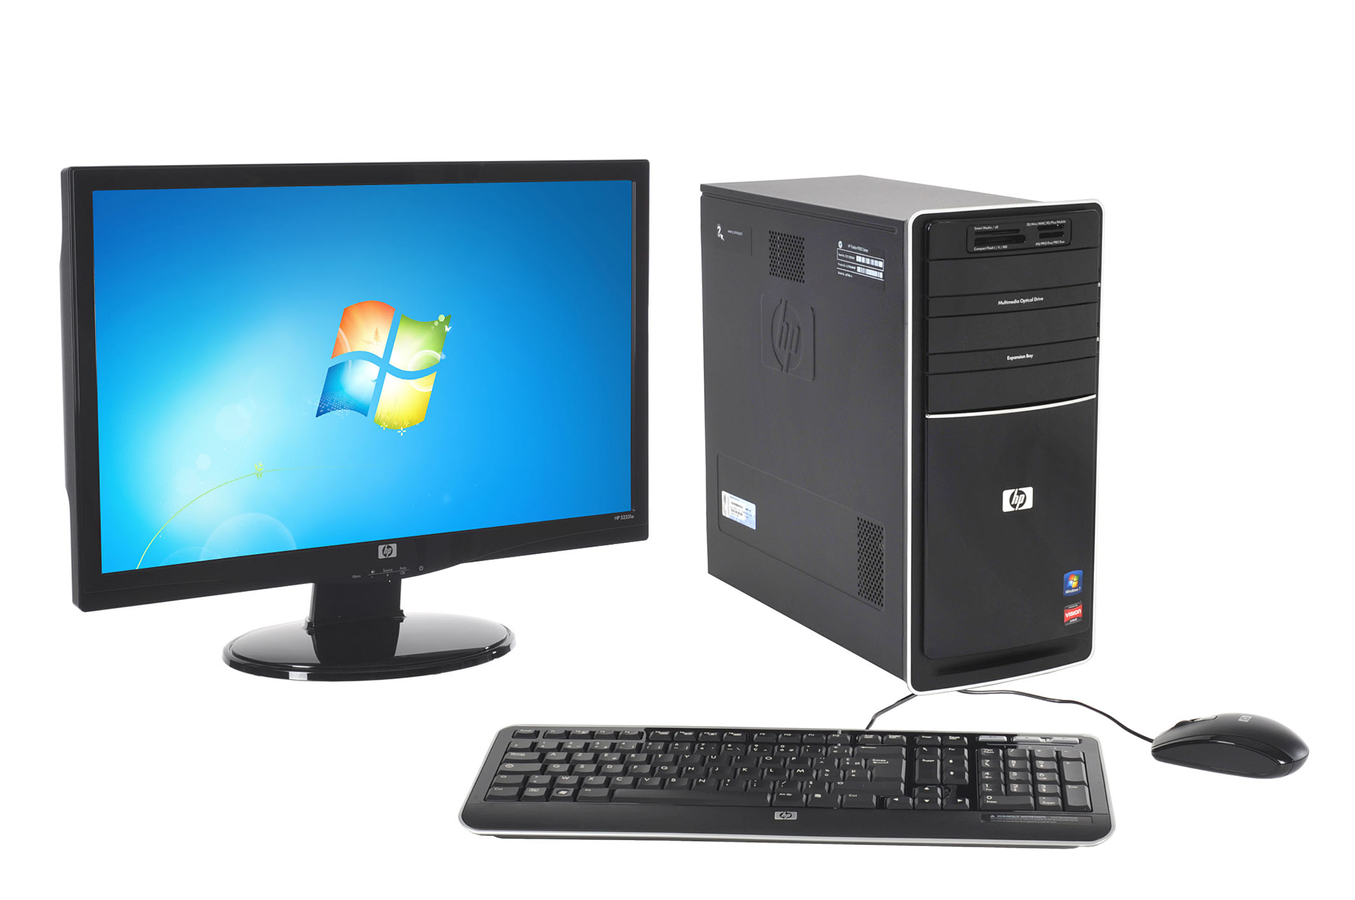 Pc de bureau hp p6730fr m 23 p6730fr m 23 3419312 darty - Ordinateur de bureau darty ...